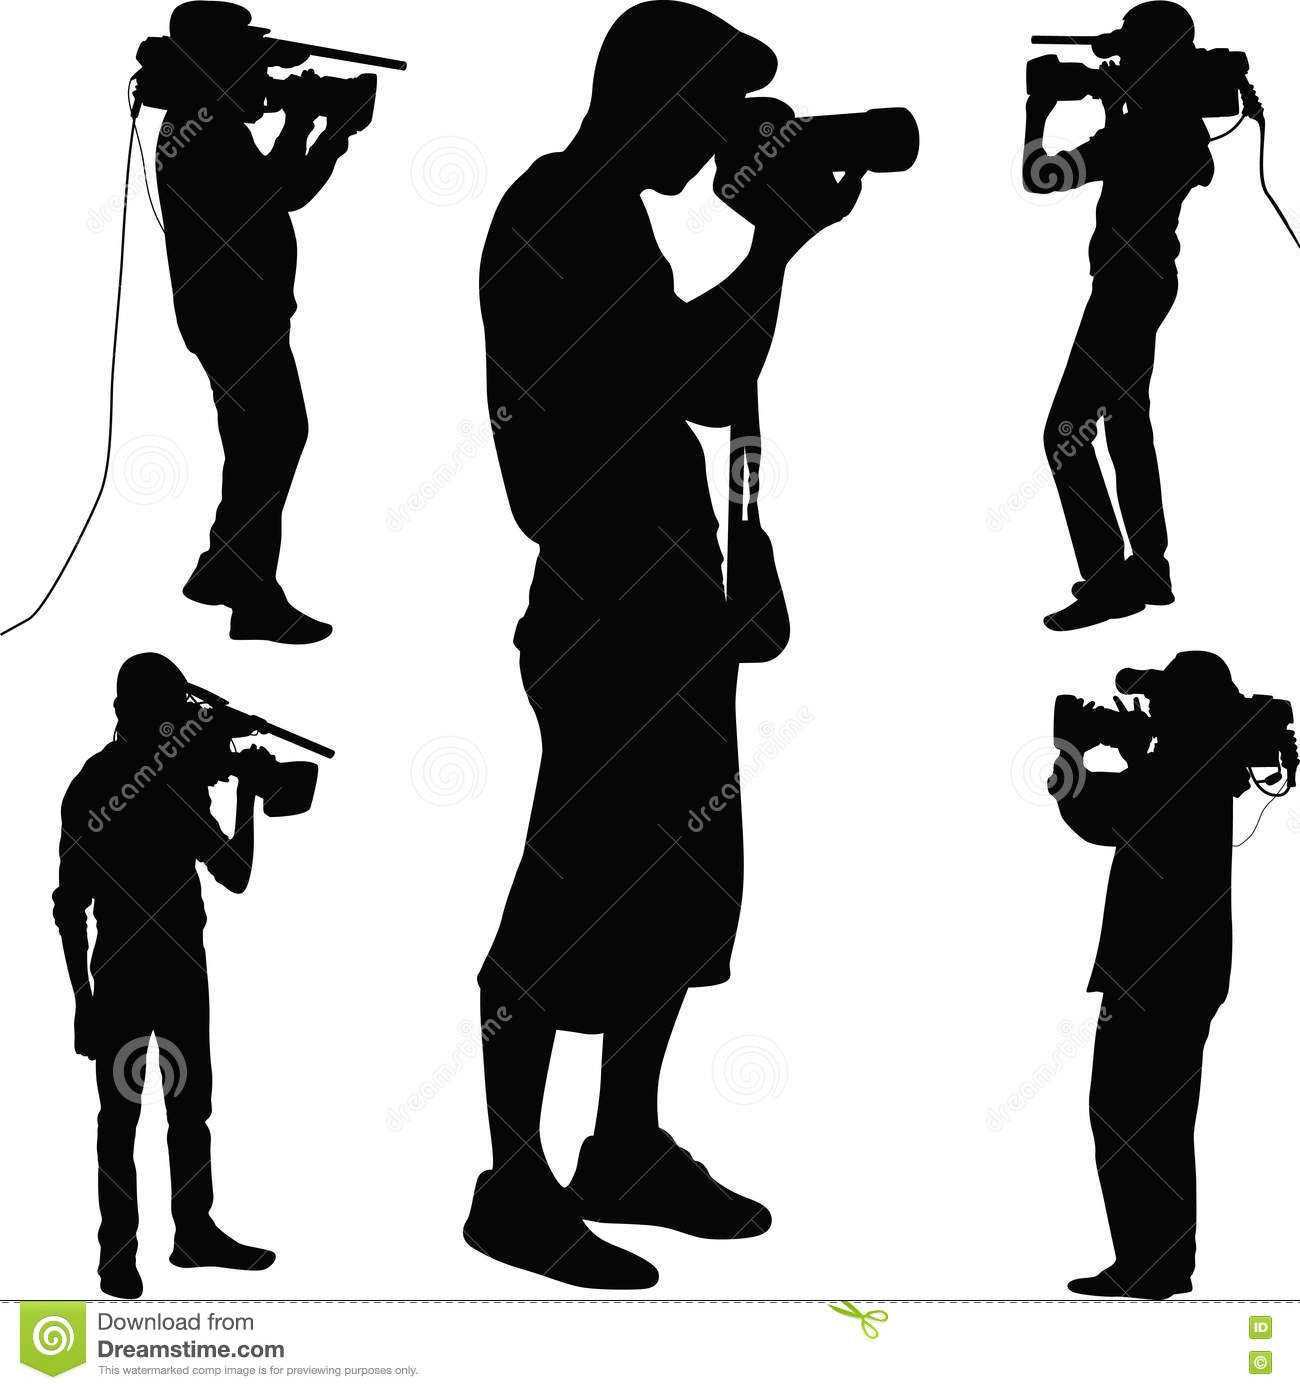 get free high quality hd wallpapers paparazzi silhouette vector